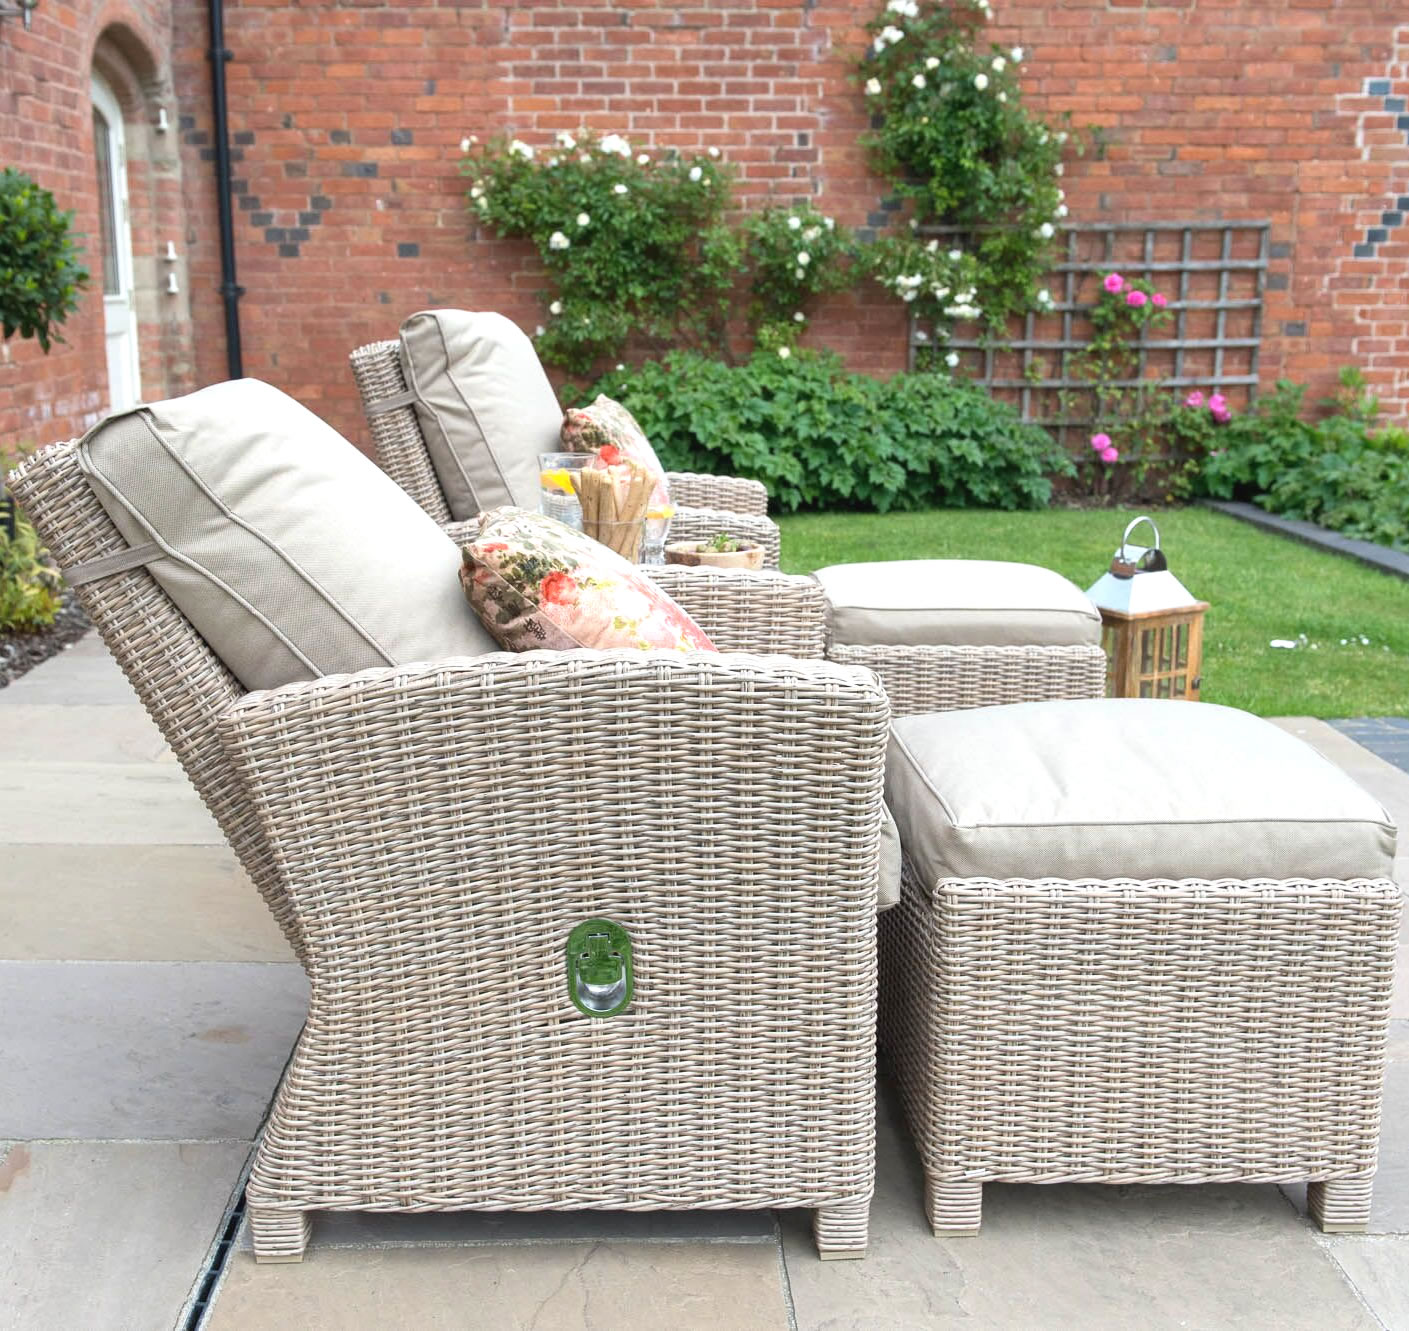 Extra image of Serenity 2 Seater Recliner Chair Furniture Set - Natural